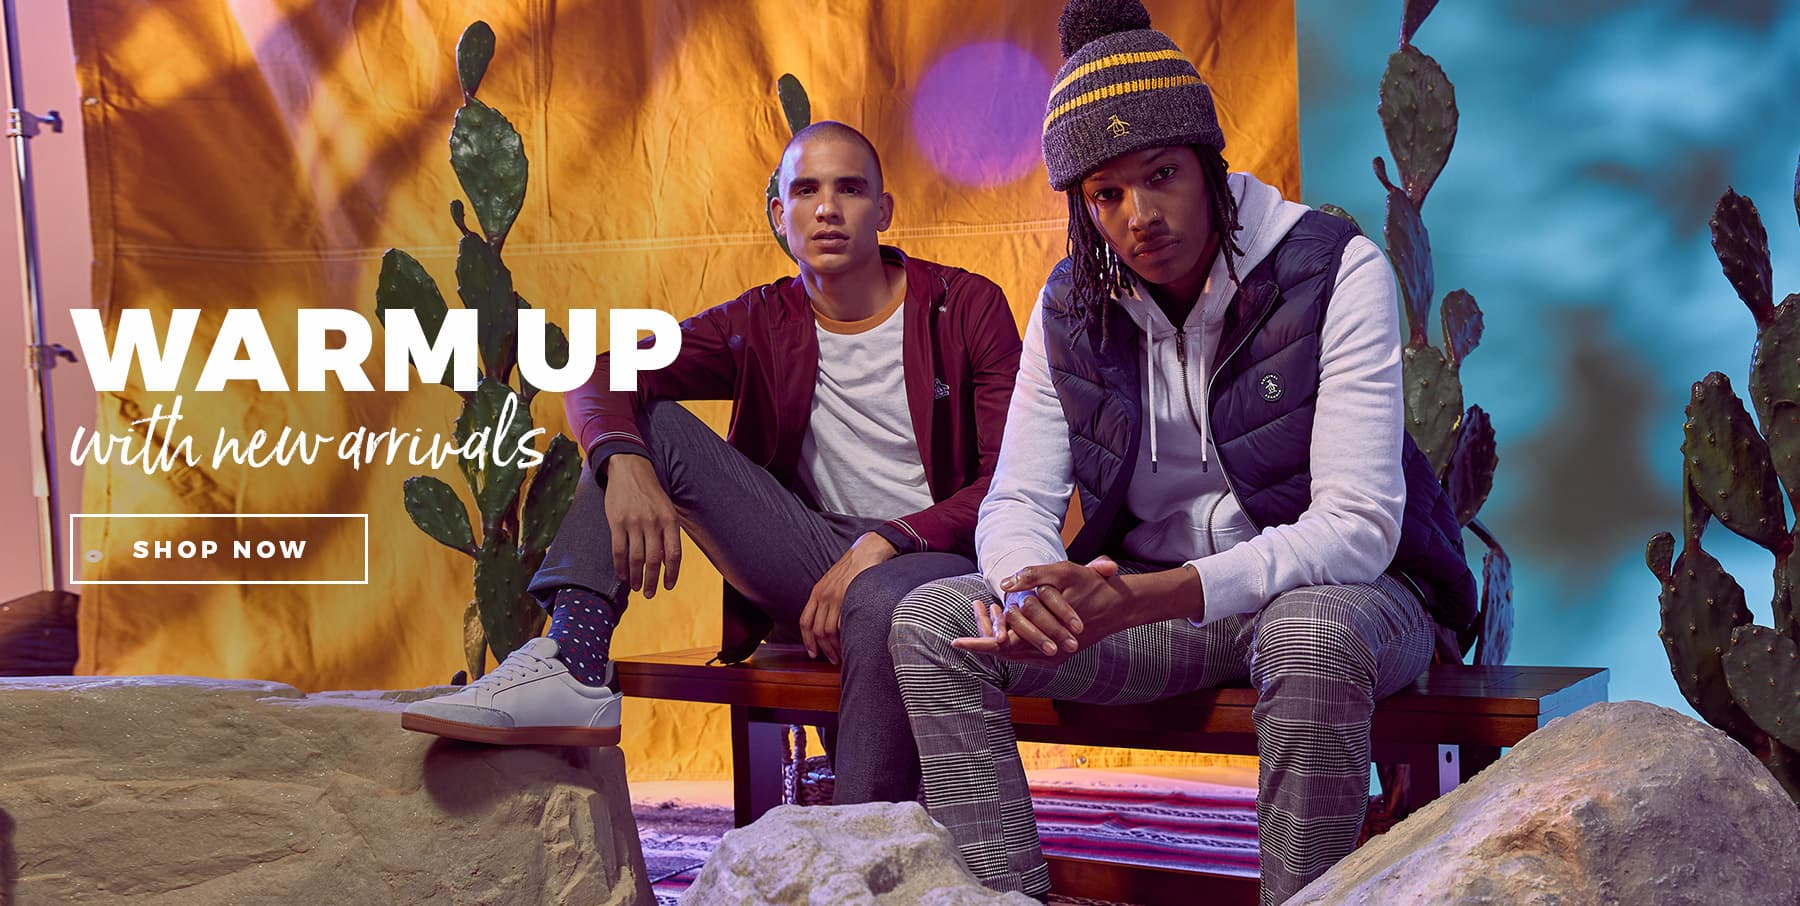 Warm Up With New Arrivals - SHOP NOW